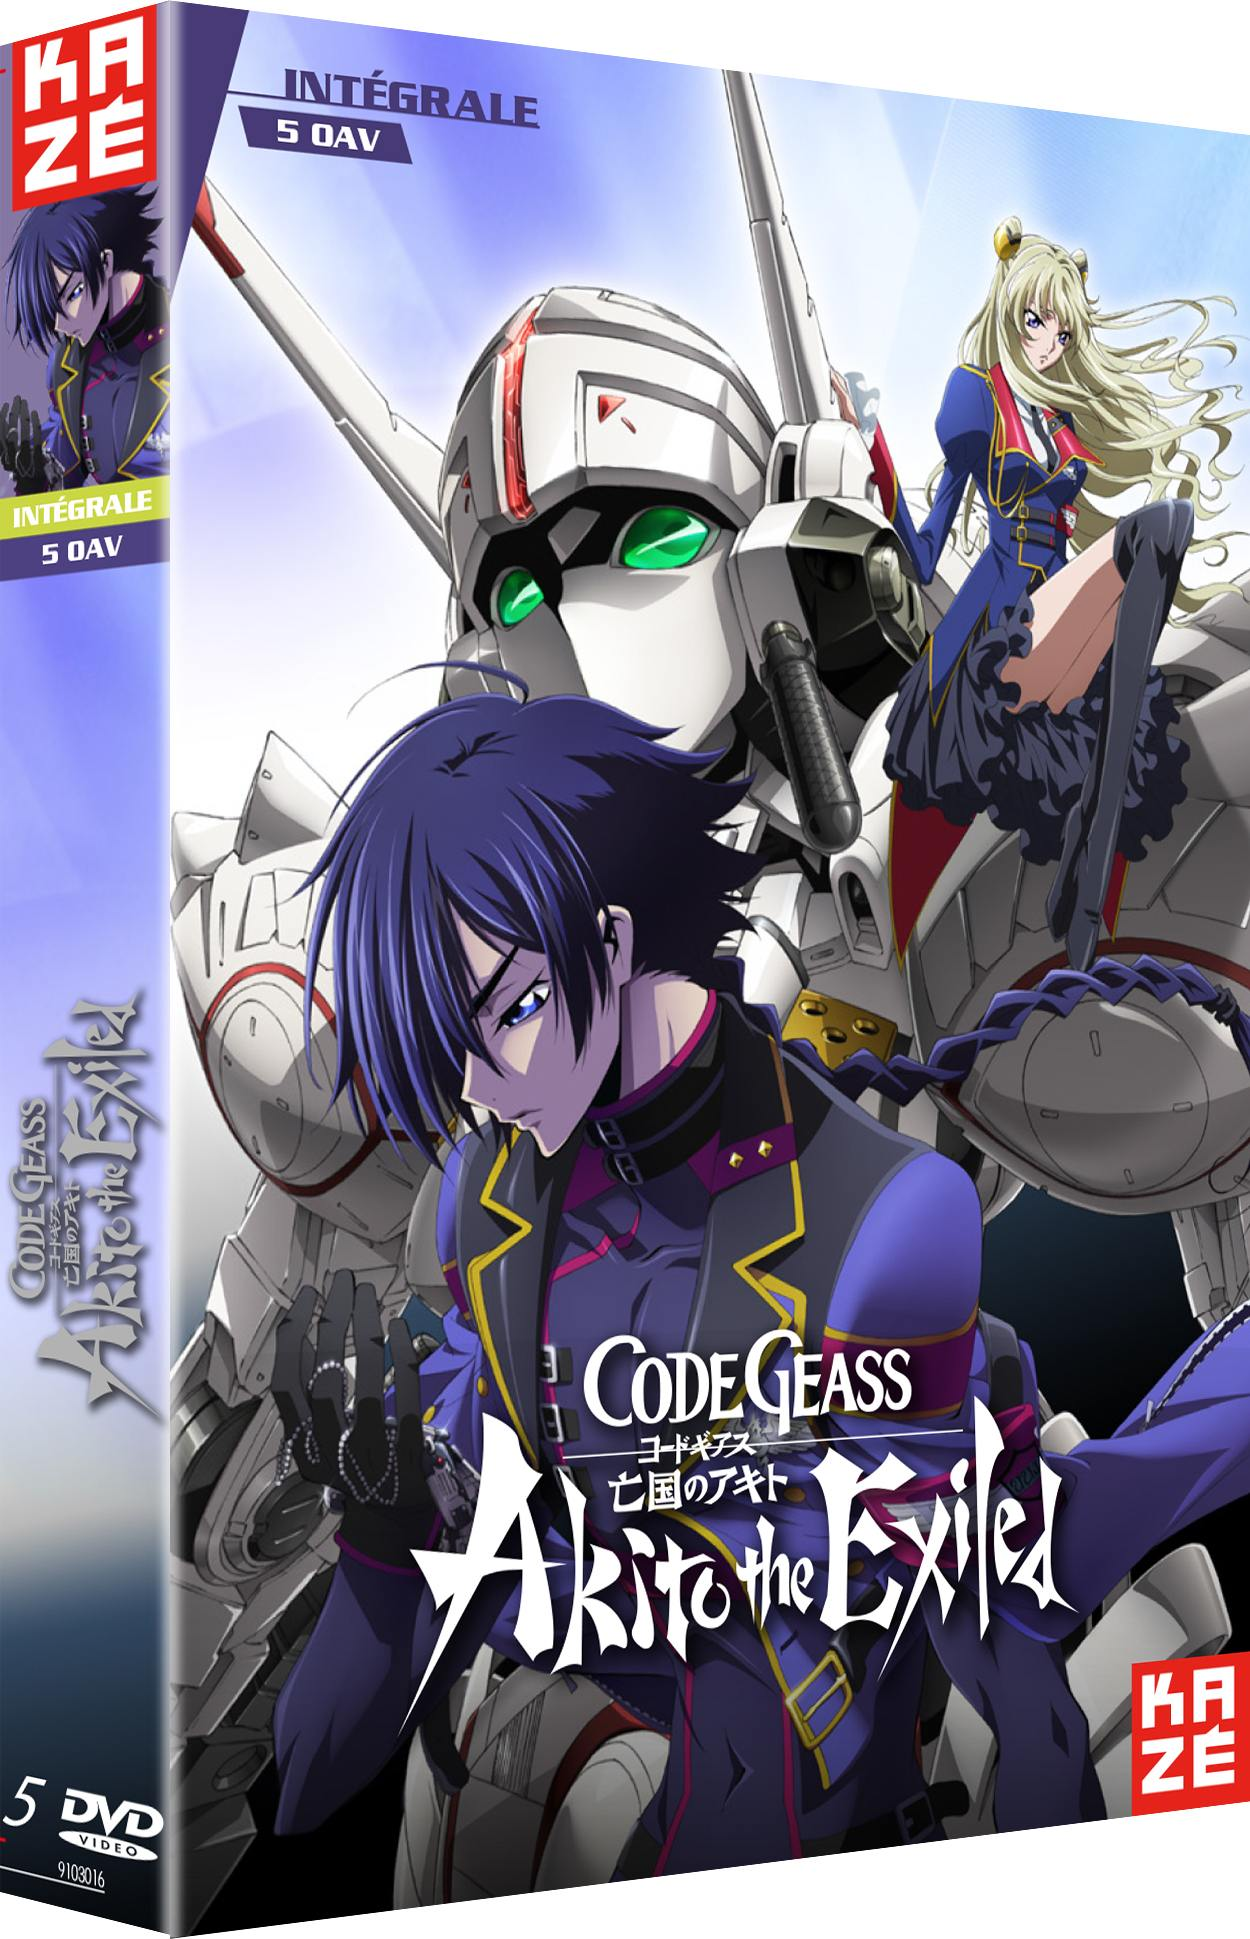 Code geass akito - the exiled - integrale 5 oav - 5 dvd